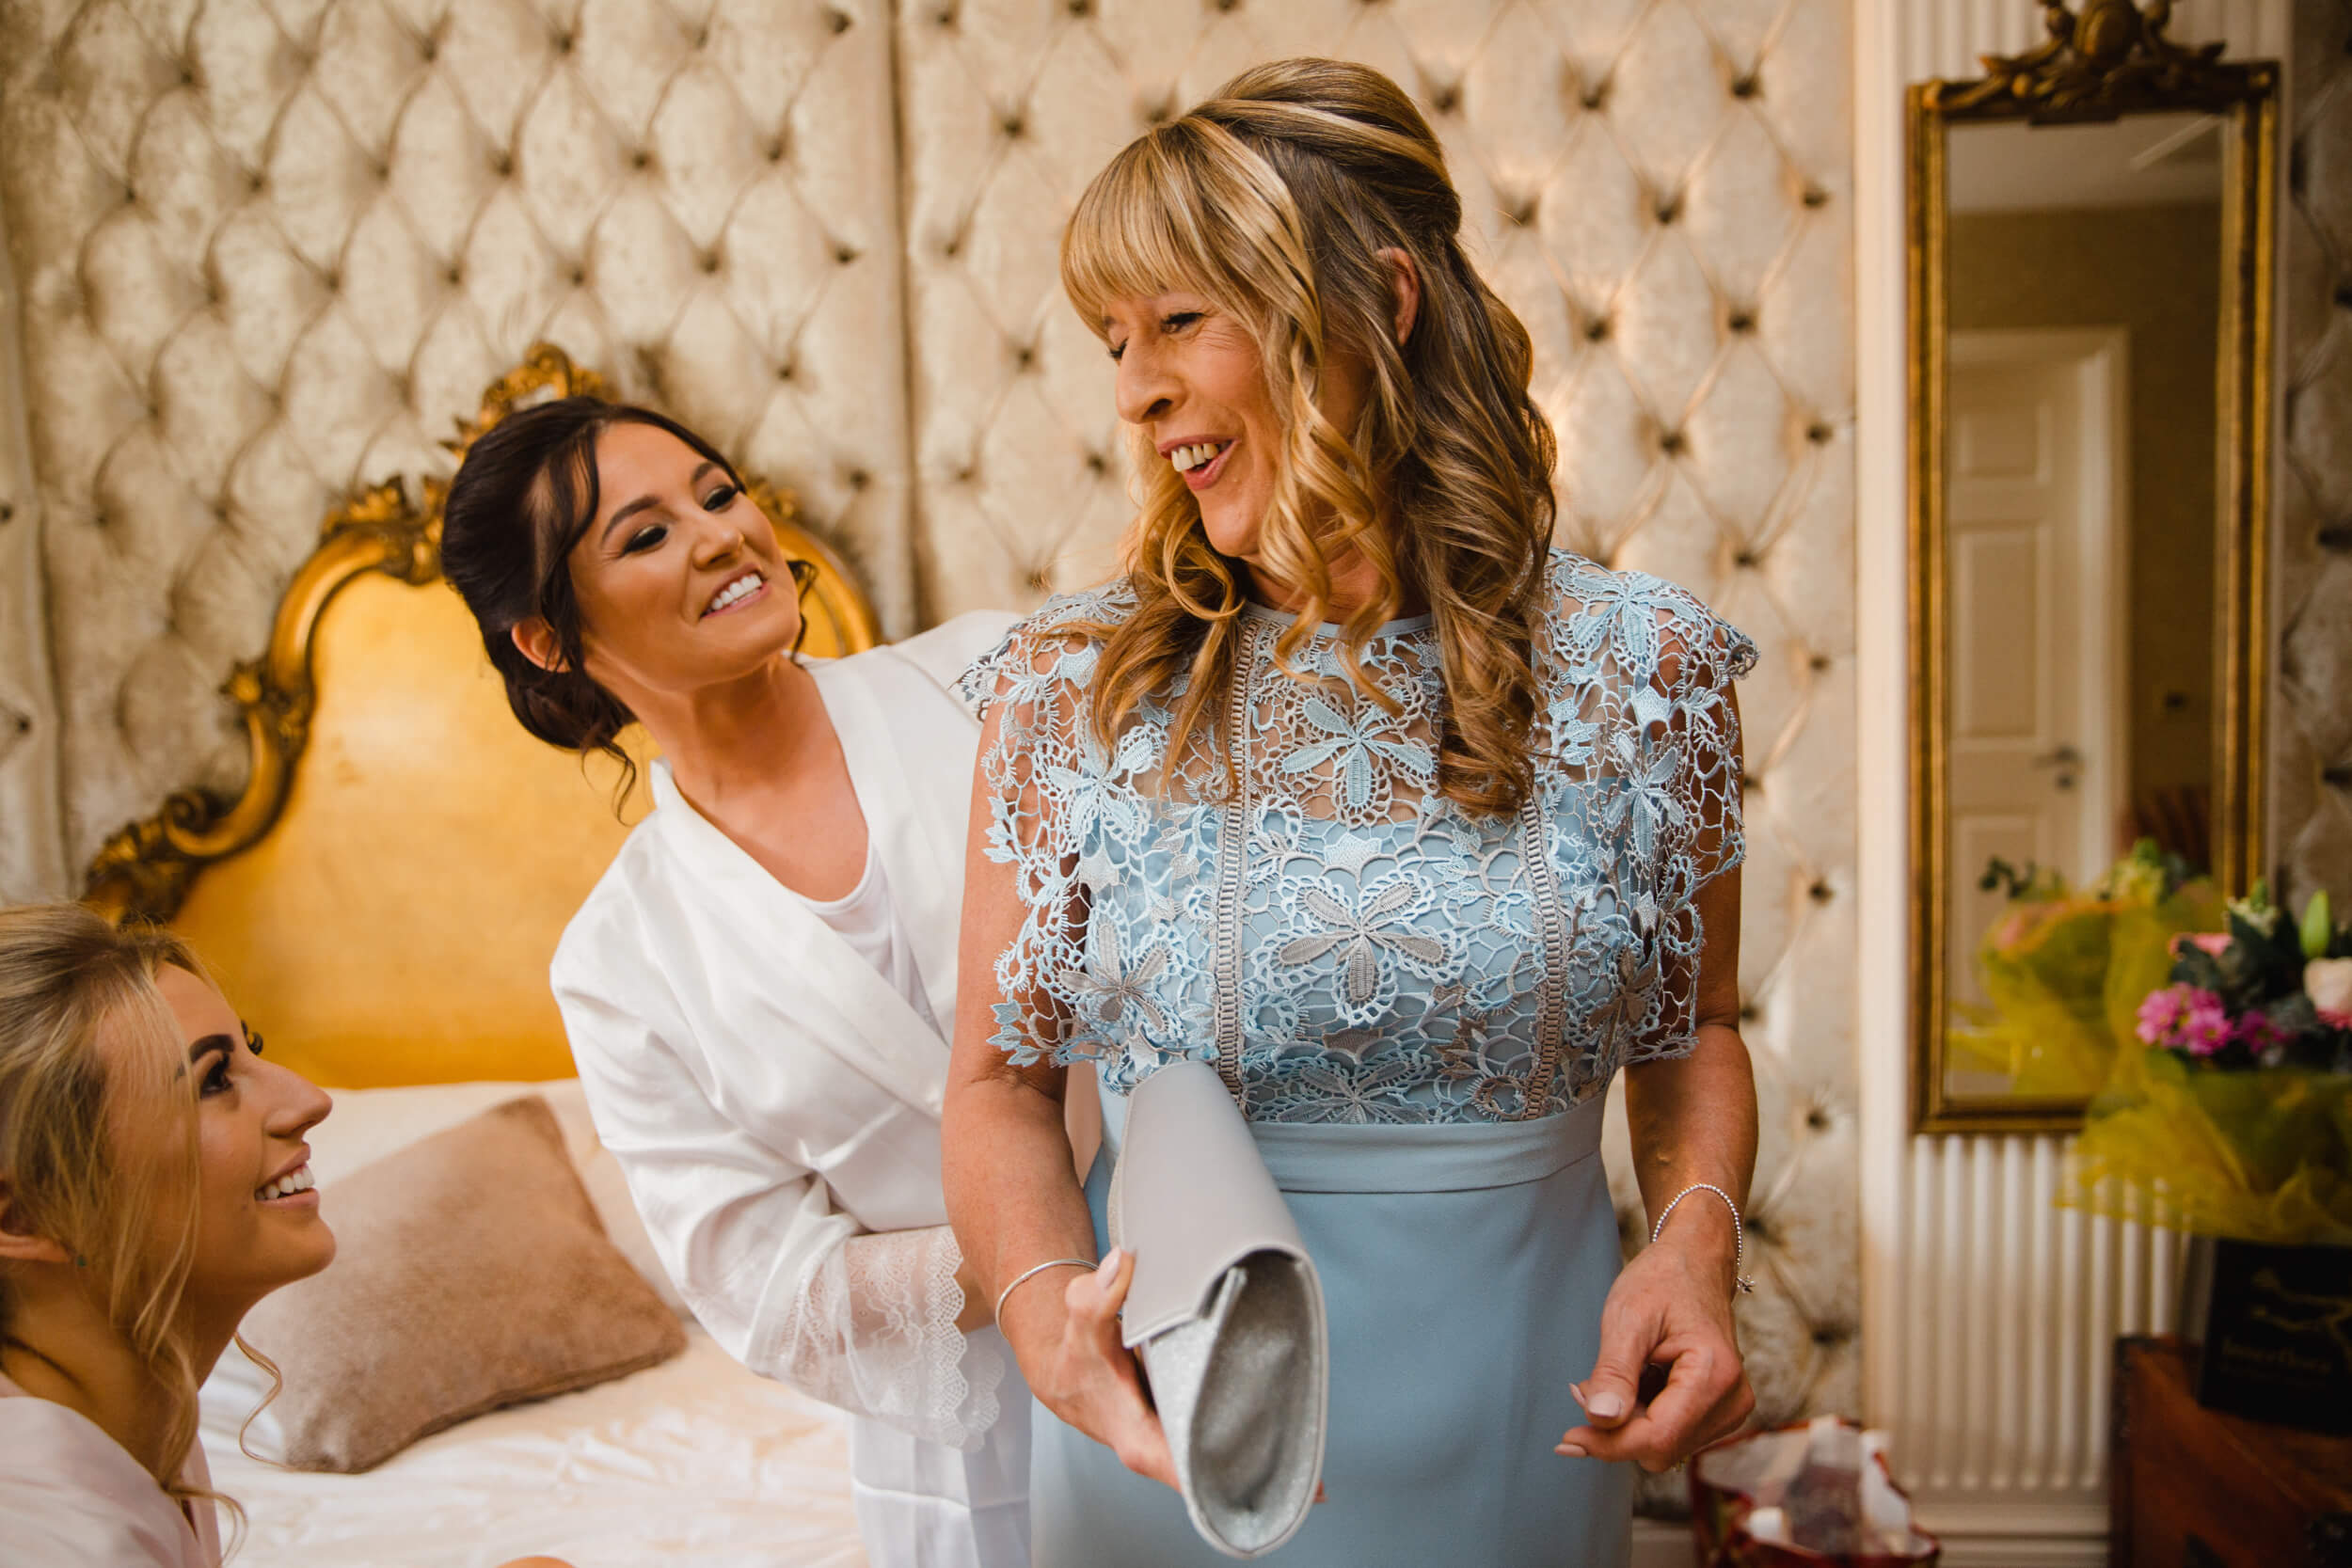 mother of bride sharing relaxed natural moment with bride and bridesmaids